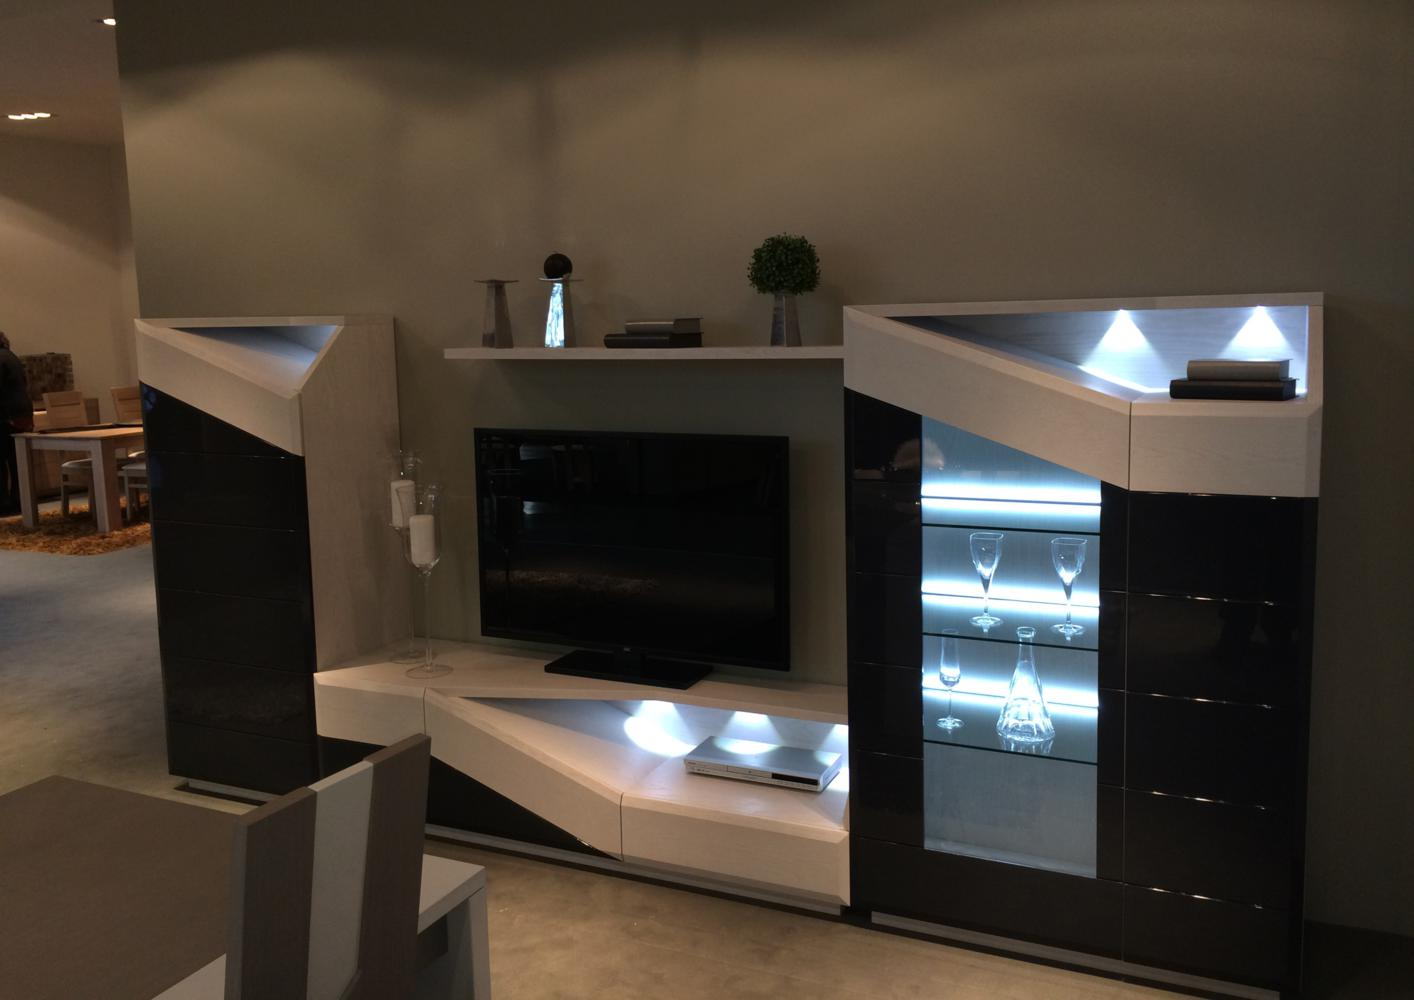 Meuble Tv Avec Vitrine - Acheter Votre Vitrine Avec Led Laque Et Bois Contemporaine Chez [mjhdah]http://www.azurahomedesign.com/6186-thickbox_default/ensemble-meuble-tv-dark-avec-leds.jpg